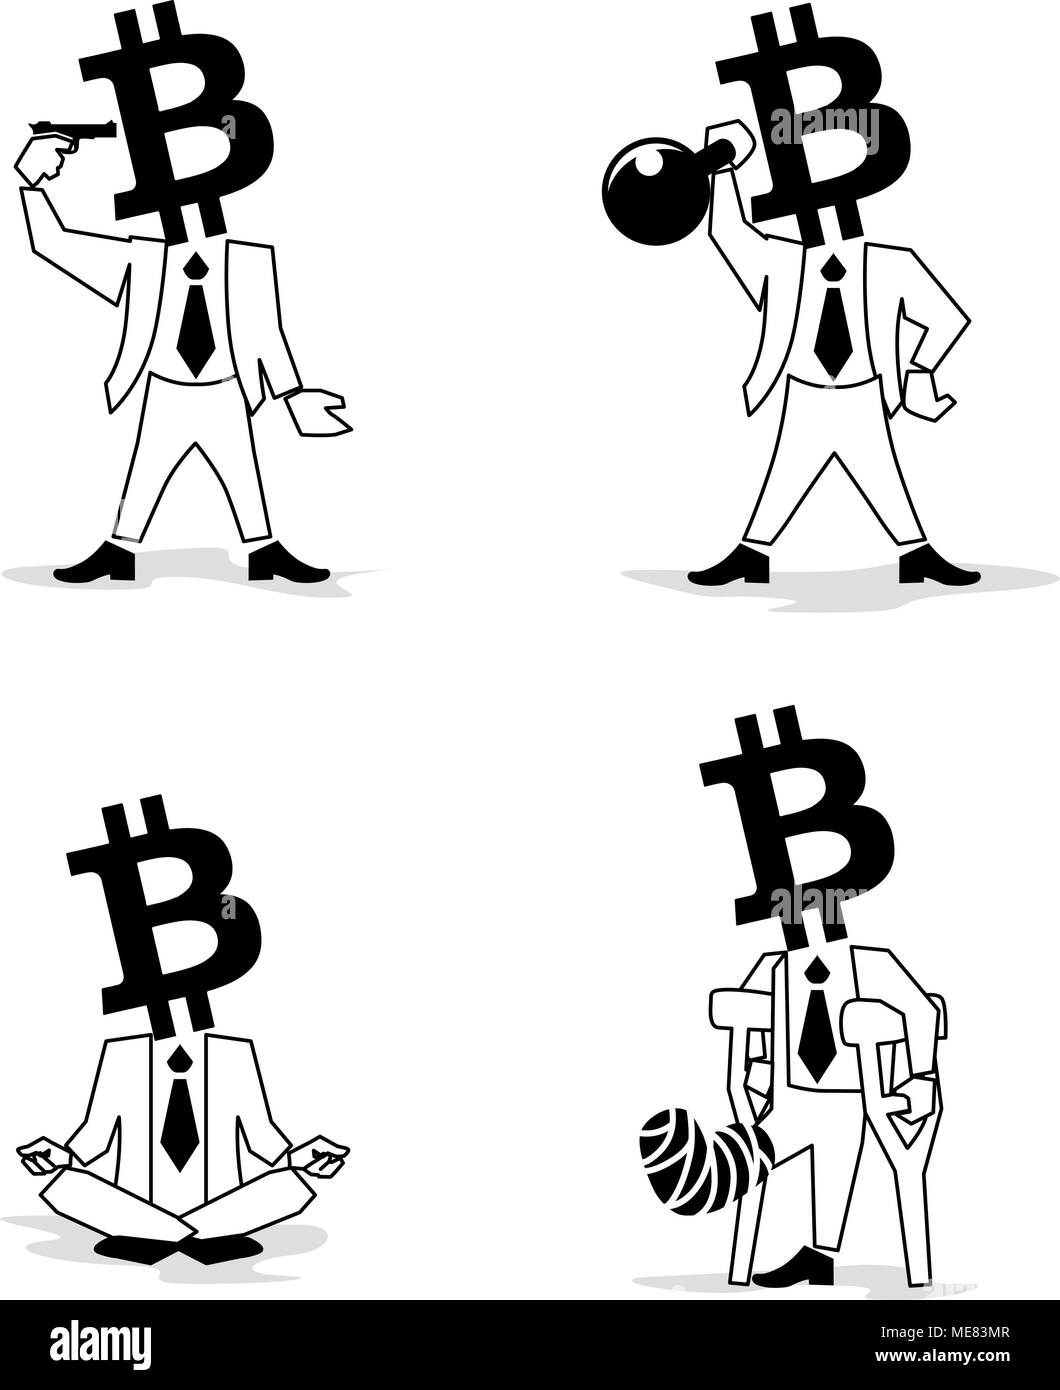 Bitcoin sign, digital currency, cryptocurrency, electronic money such as passion Businessman. - Stock Image